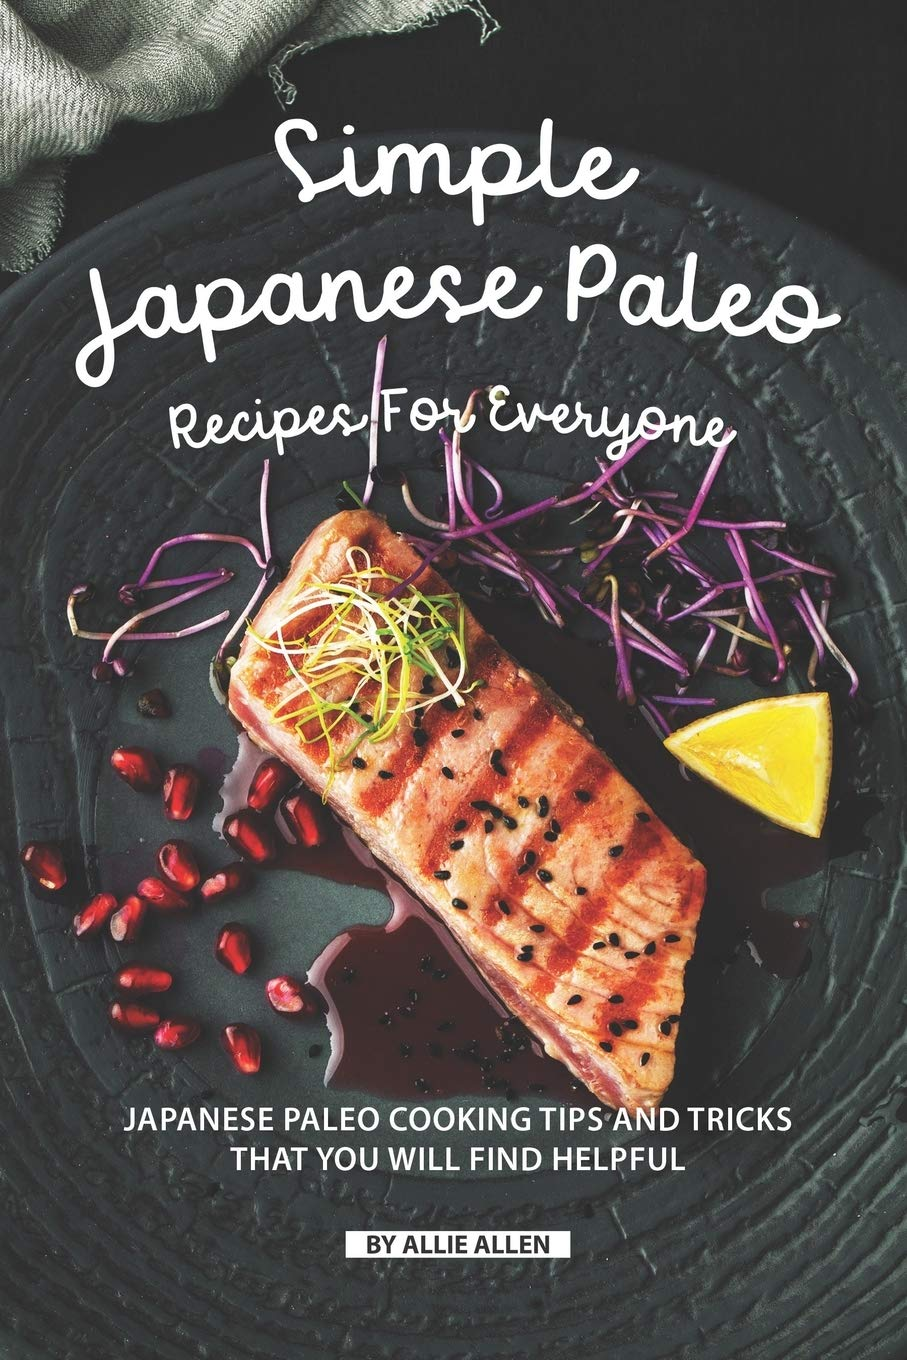 Simple Japanese Paleo Recipes for Everyone: Japanese Paleo Cooking Tips and Tricks That You Will Find Helpful